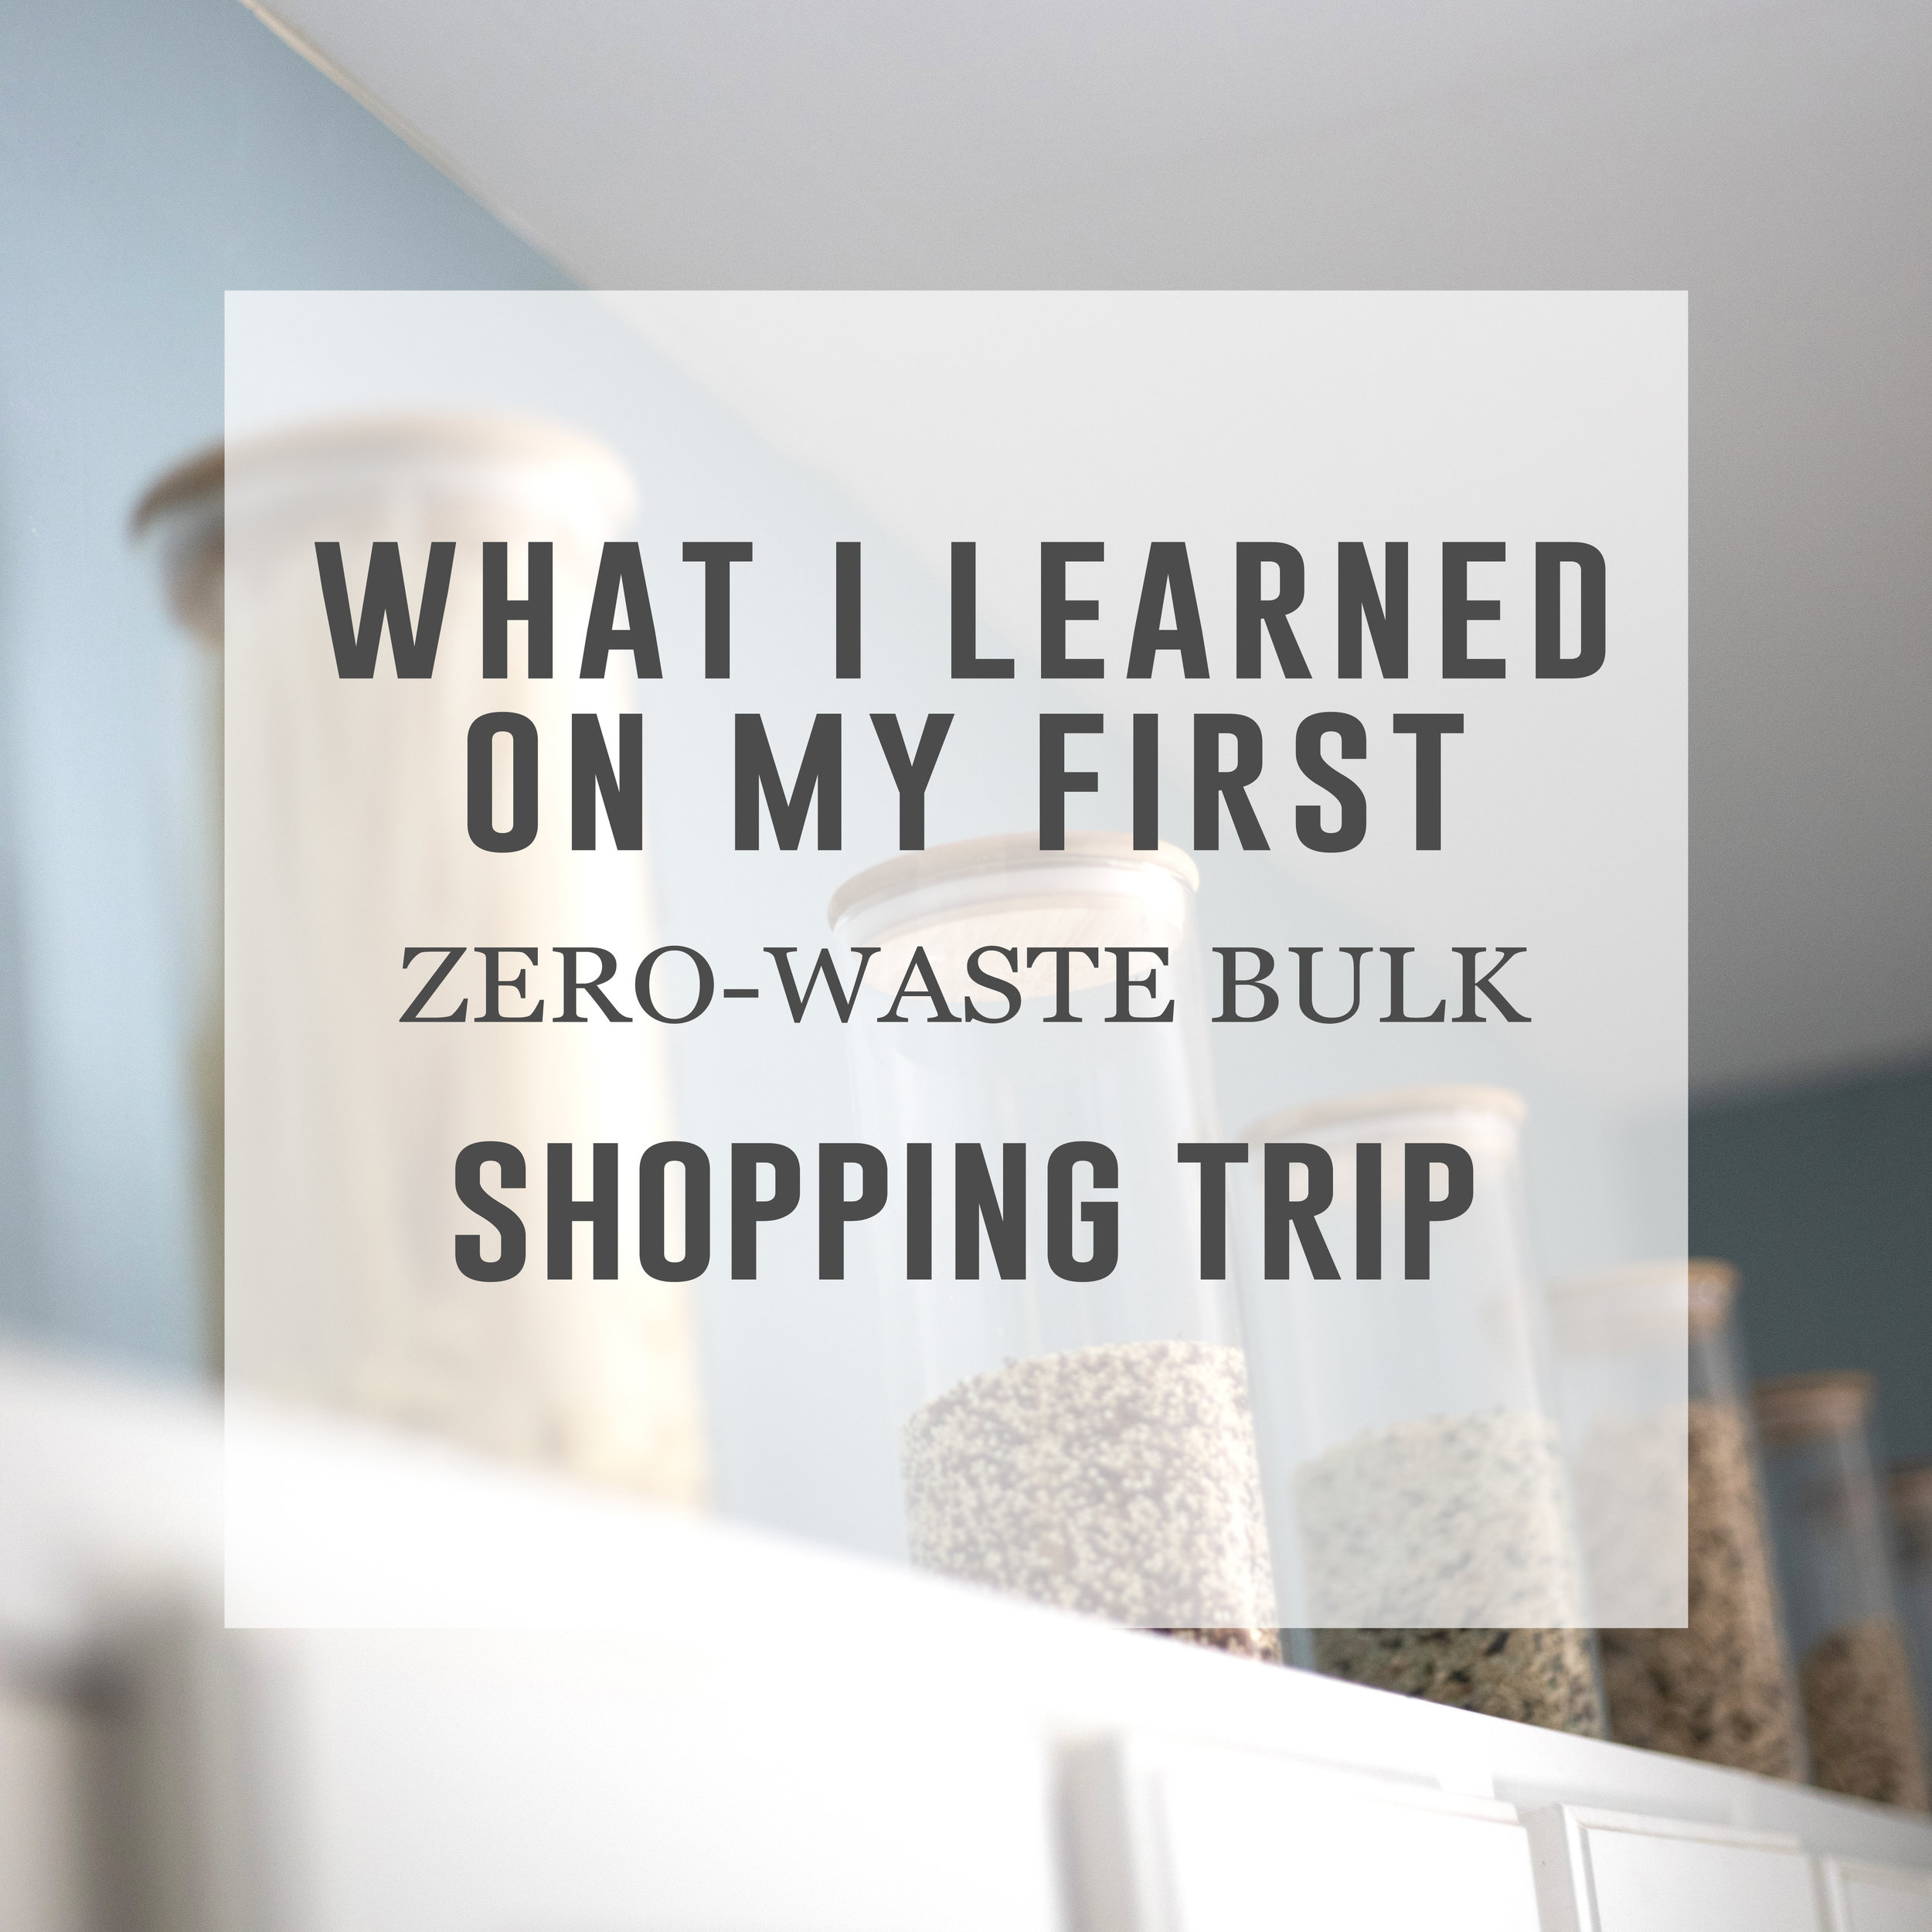 zero-waste-bulk-featured-image.jpg